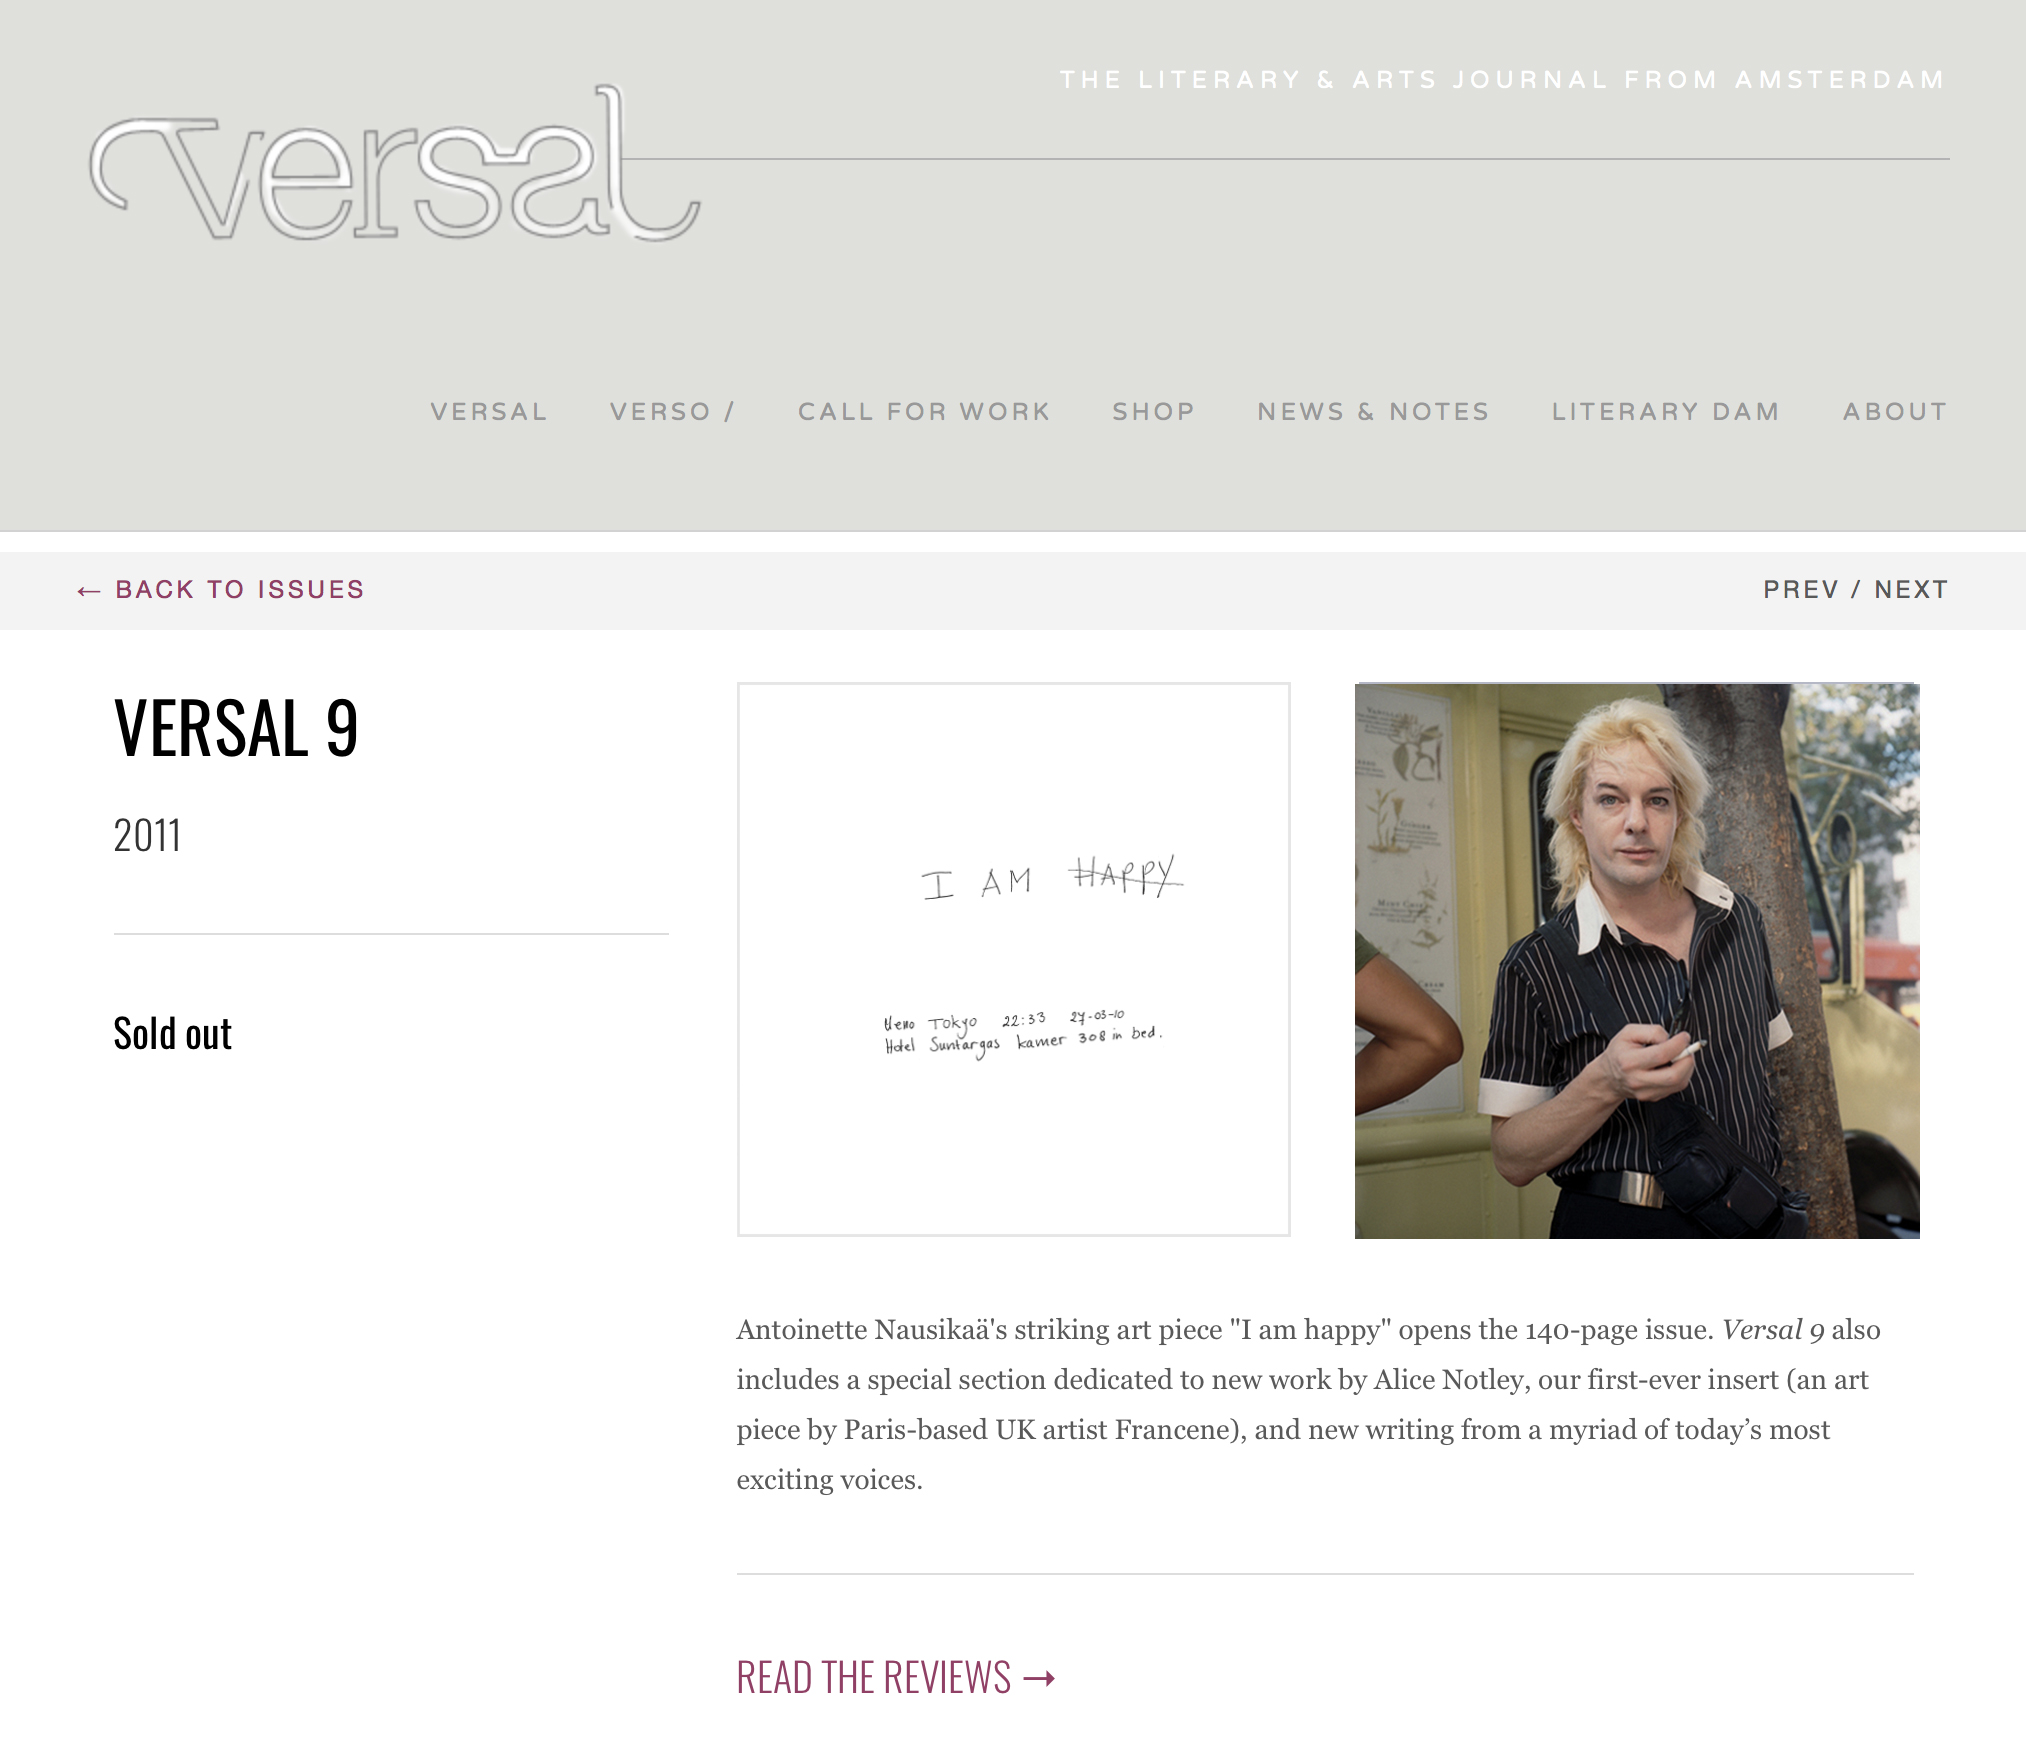 Versal Journal,The Insiders - MAY 2011 Versal is a literary & arts journal based in Amsterdam, the Netherlands.